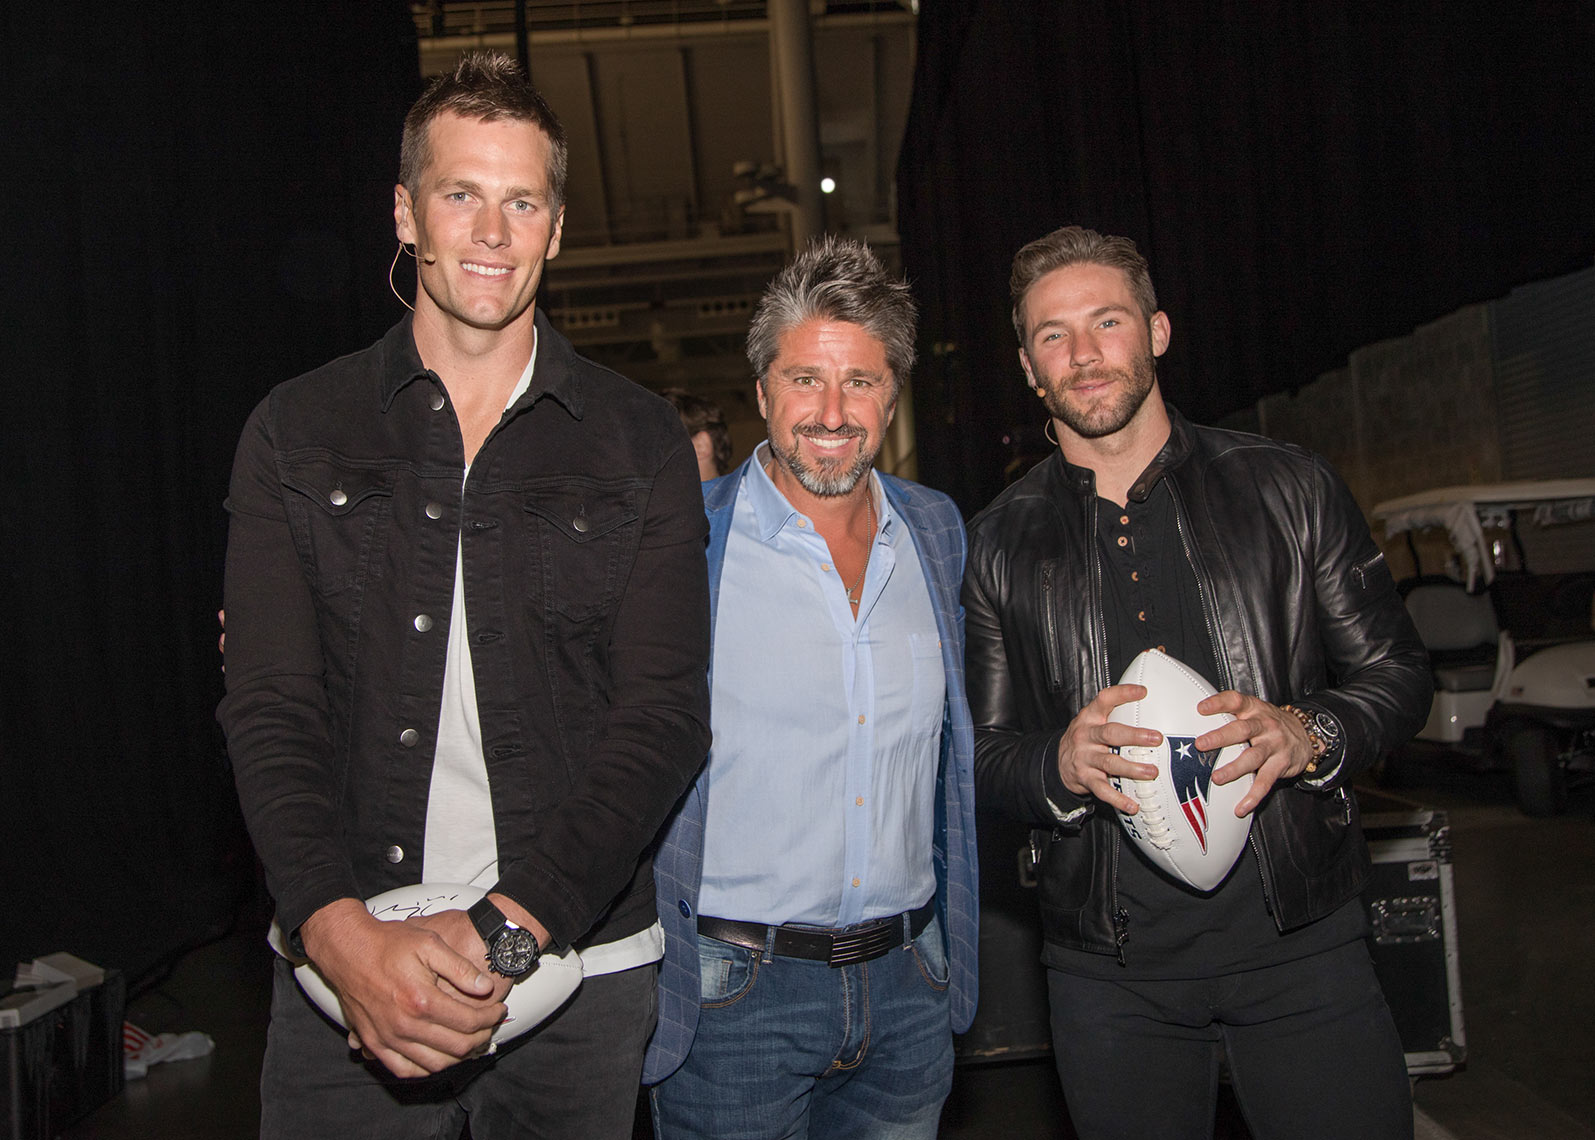 Tom Brady and Julian Edelman Backstage at the NAC Conference